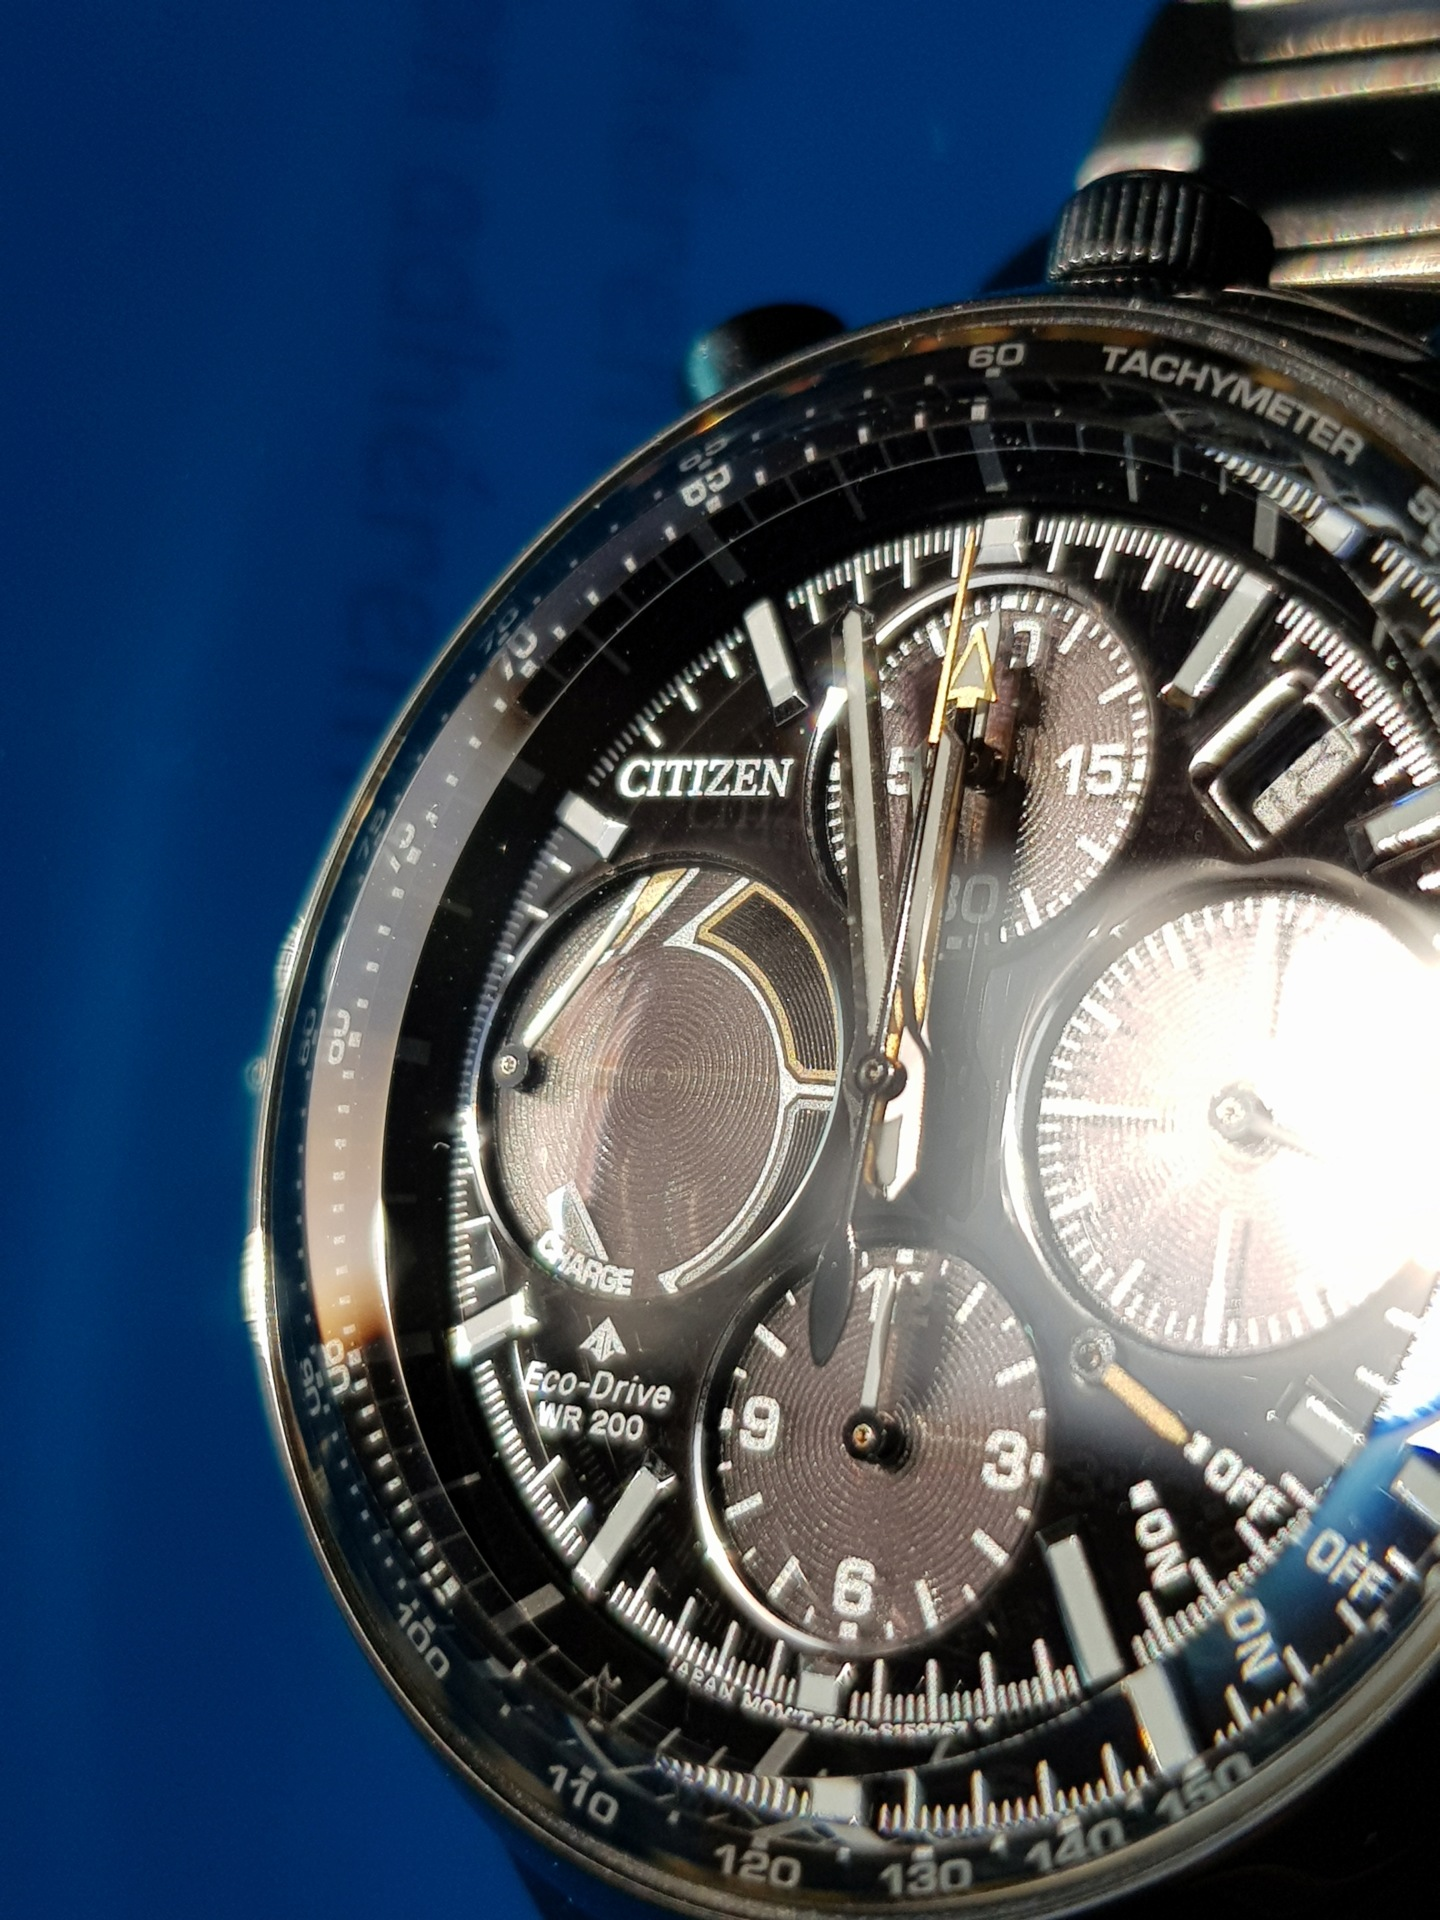 citizen - Présentation : Citizen Promaster Chrono 100th Anniversary 20190127